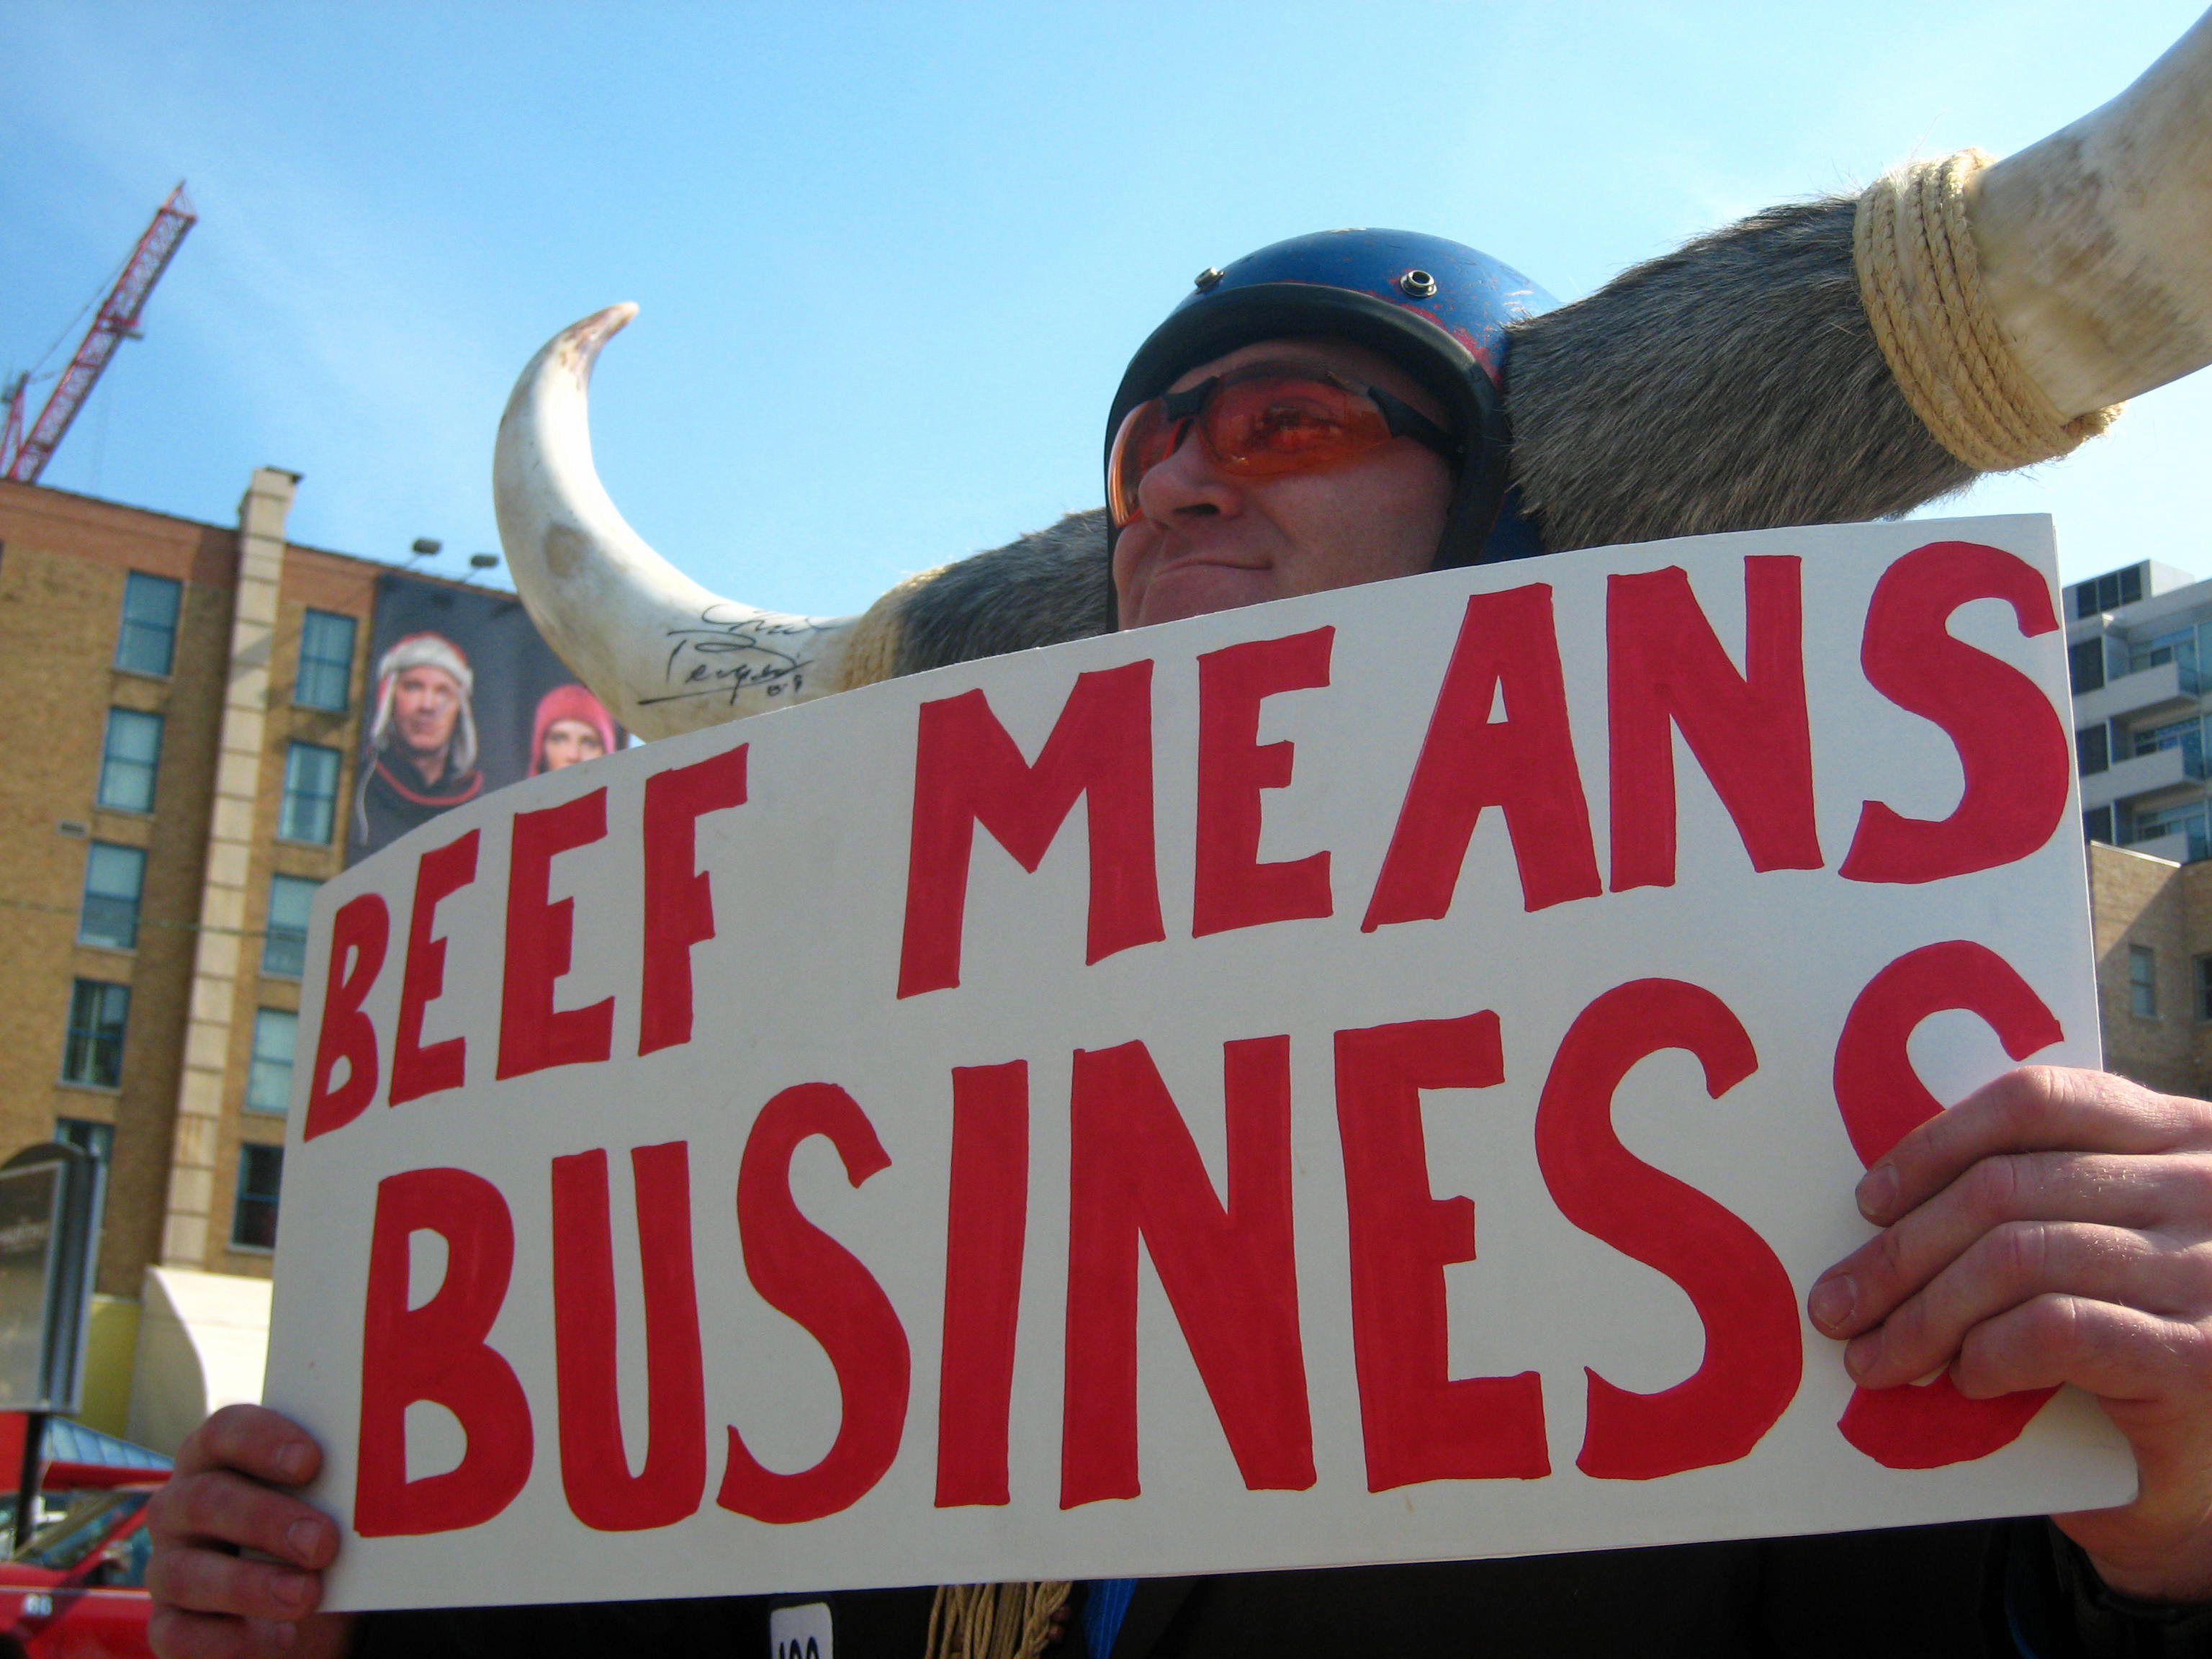 On the street: Beef means business on Orleans